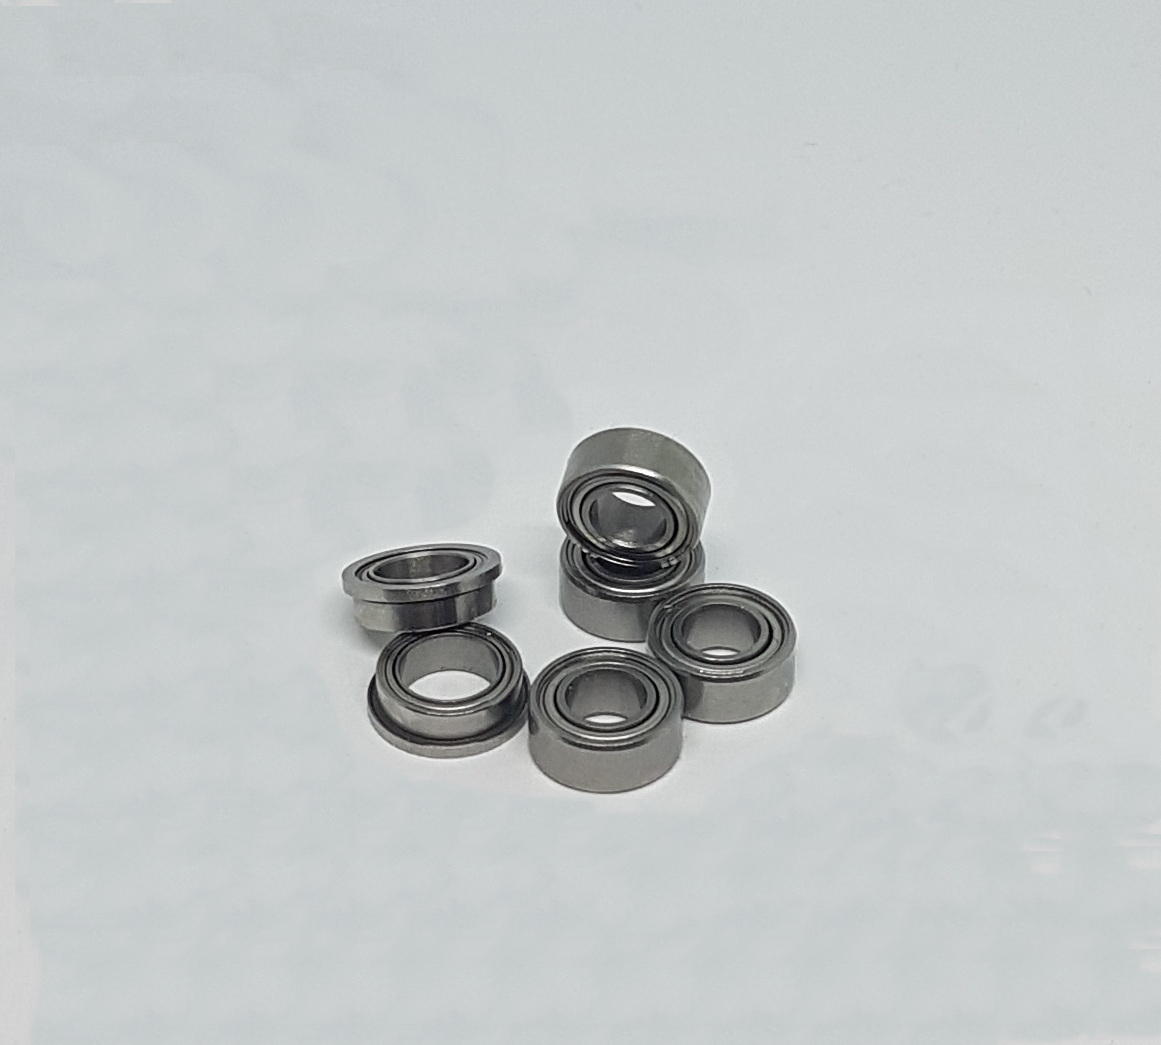 F1 Ceramic Ball Bearing kit